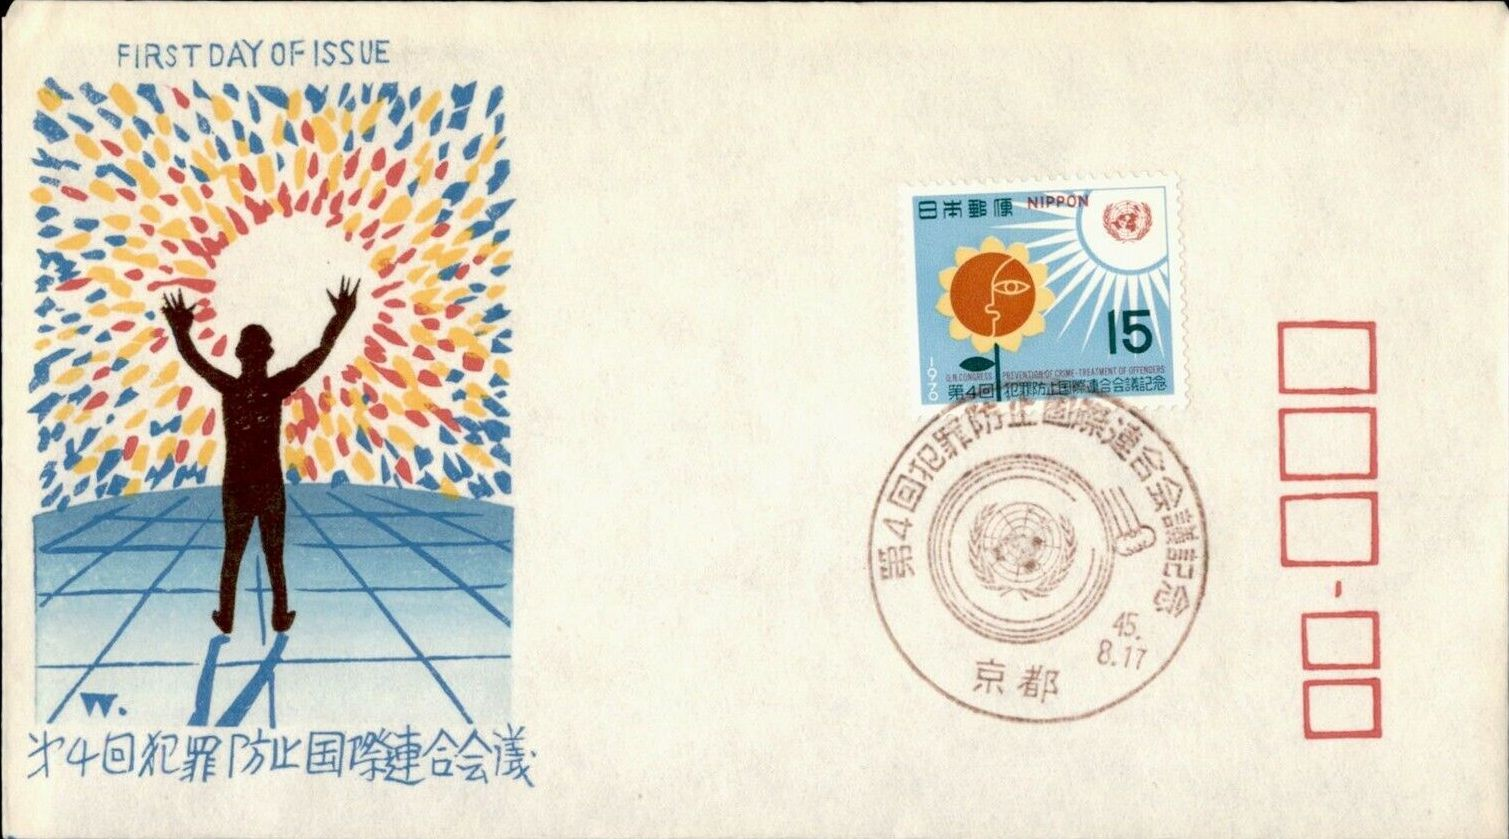 Japan 1970 4th United Nations Congress on the Prevention of Crime and the Treatment of Offenders